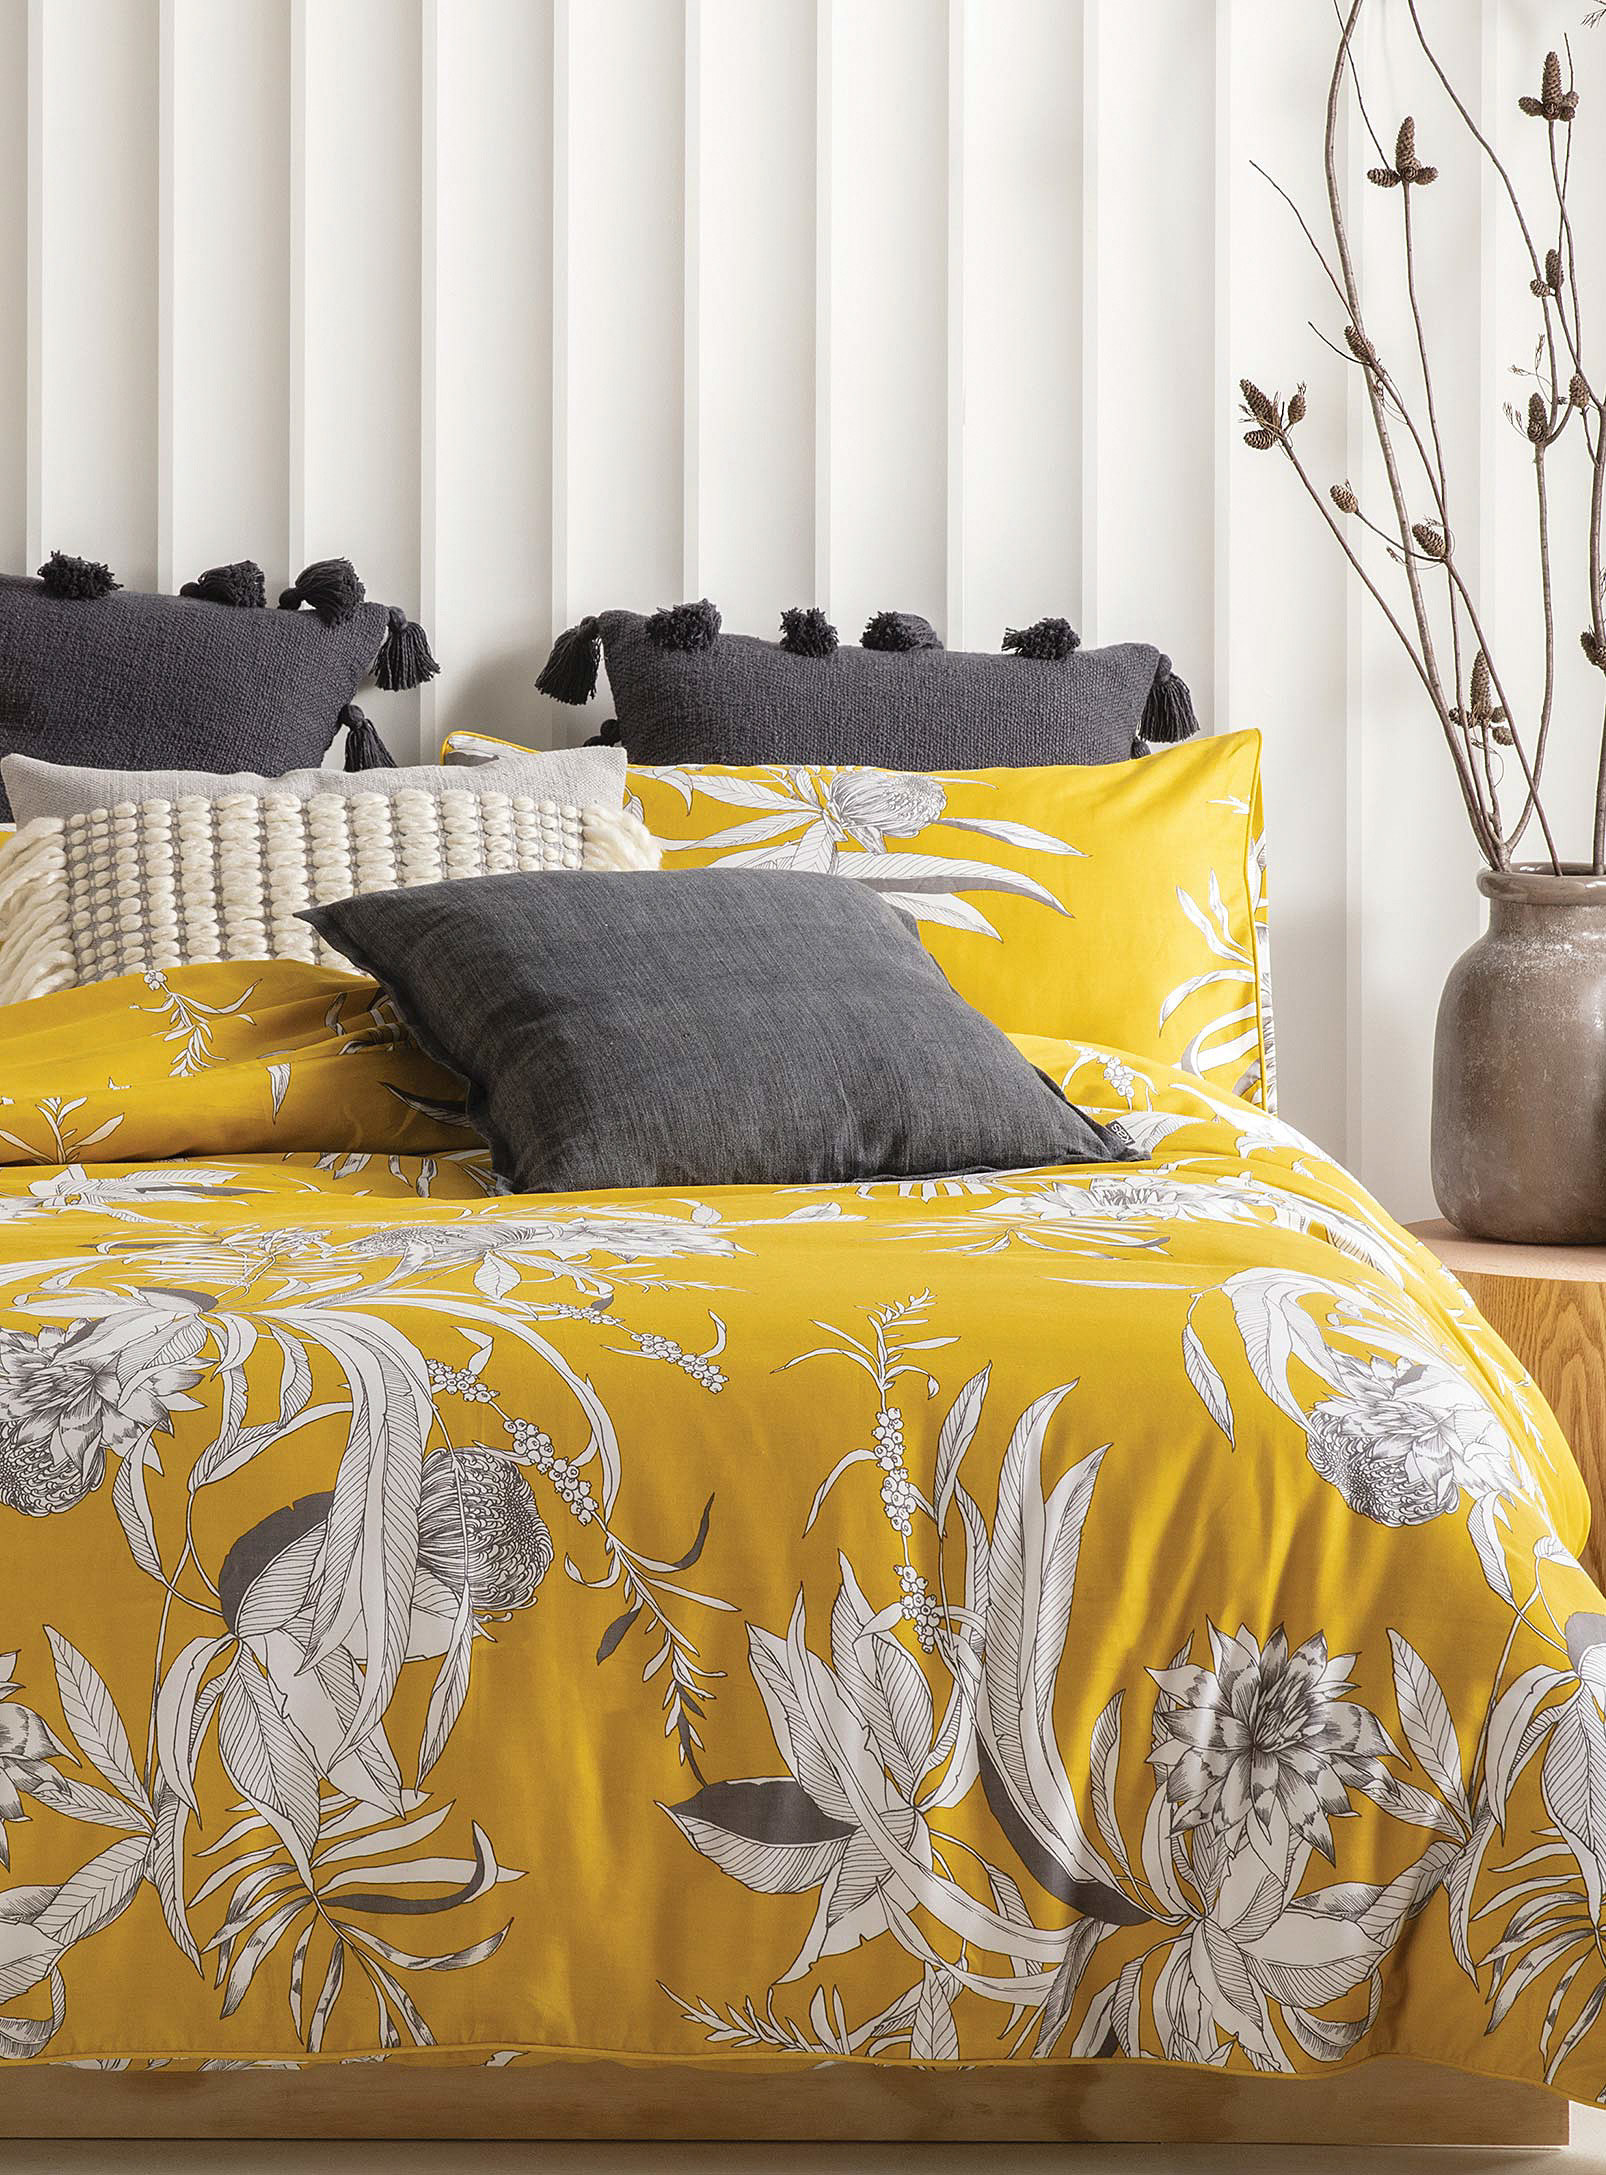 A duvet on a bed with a bunch of pillows